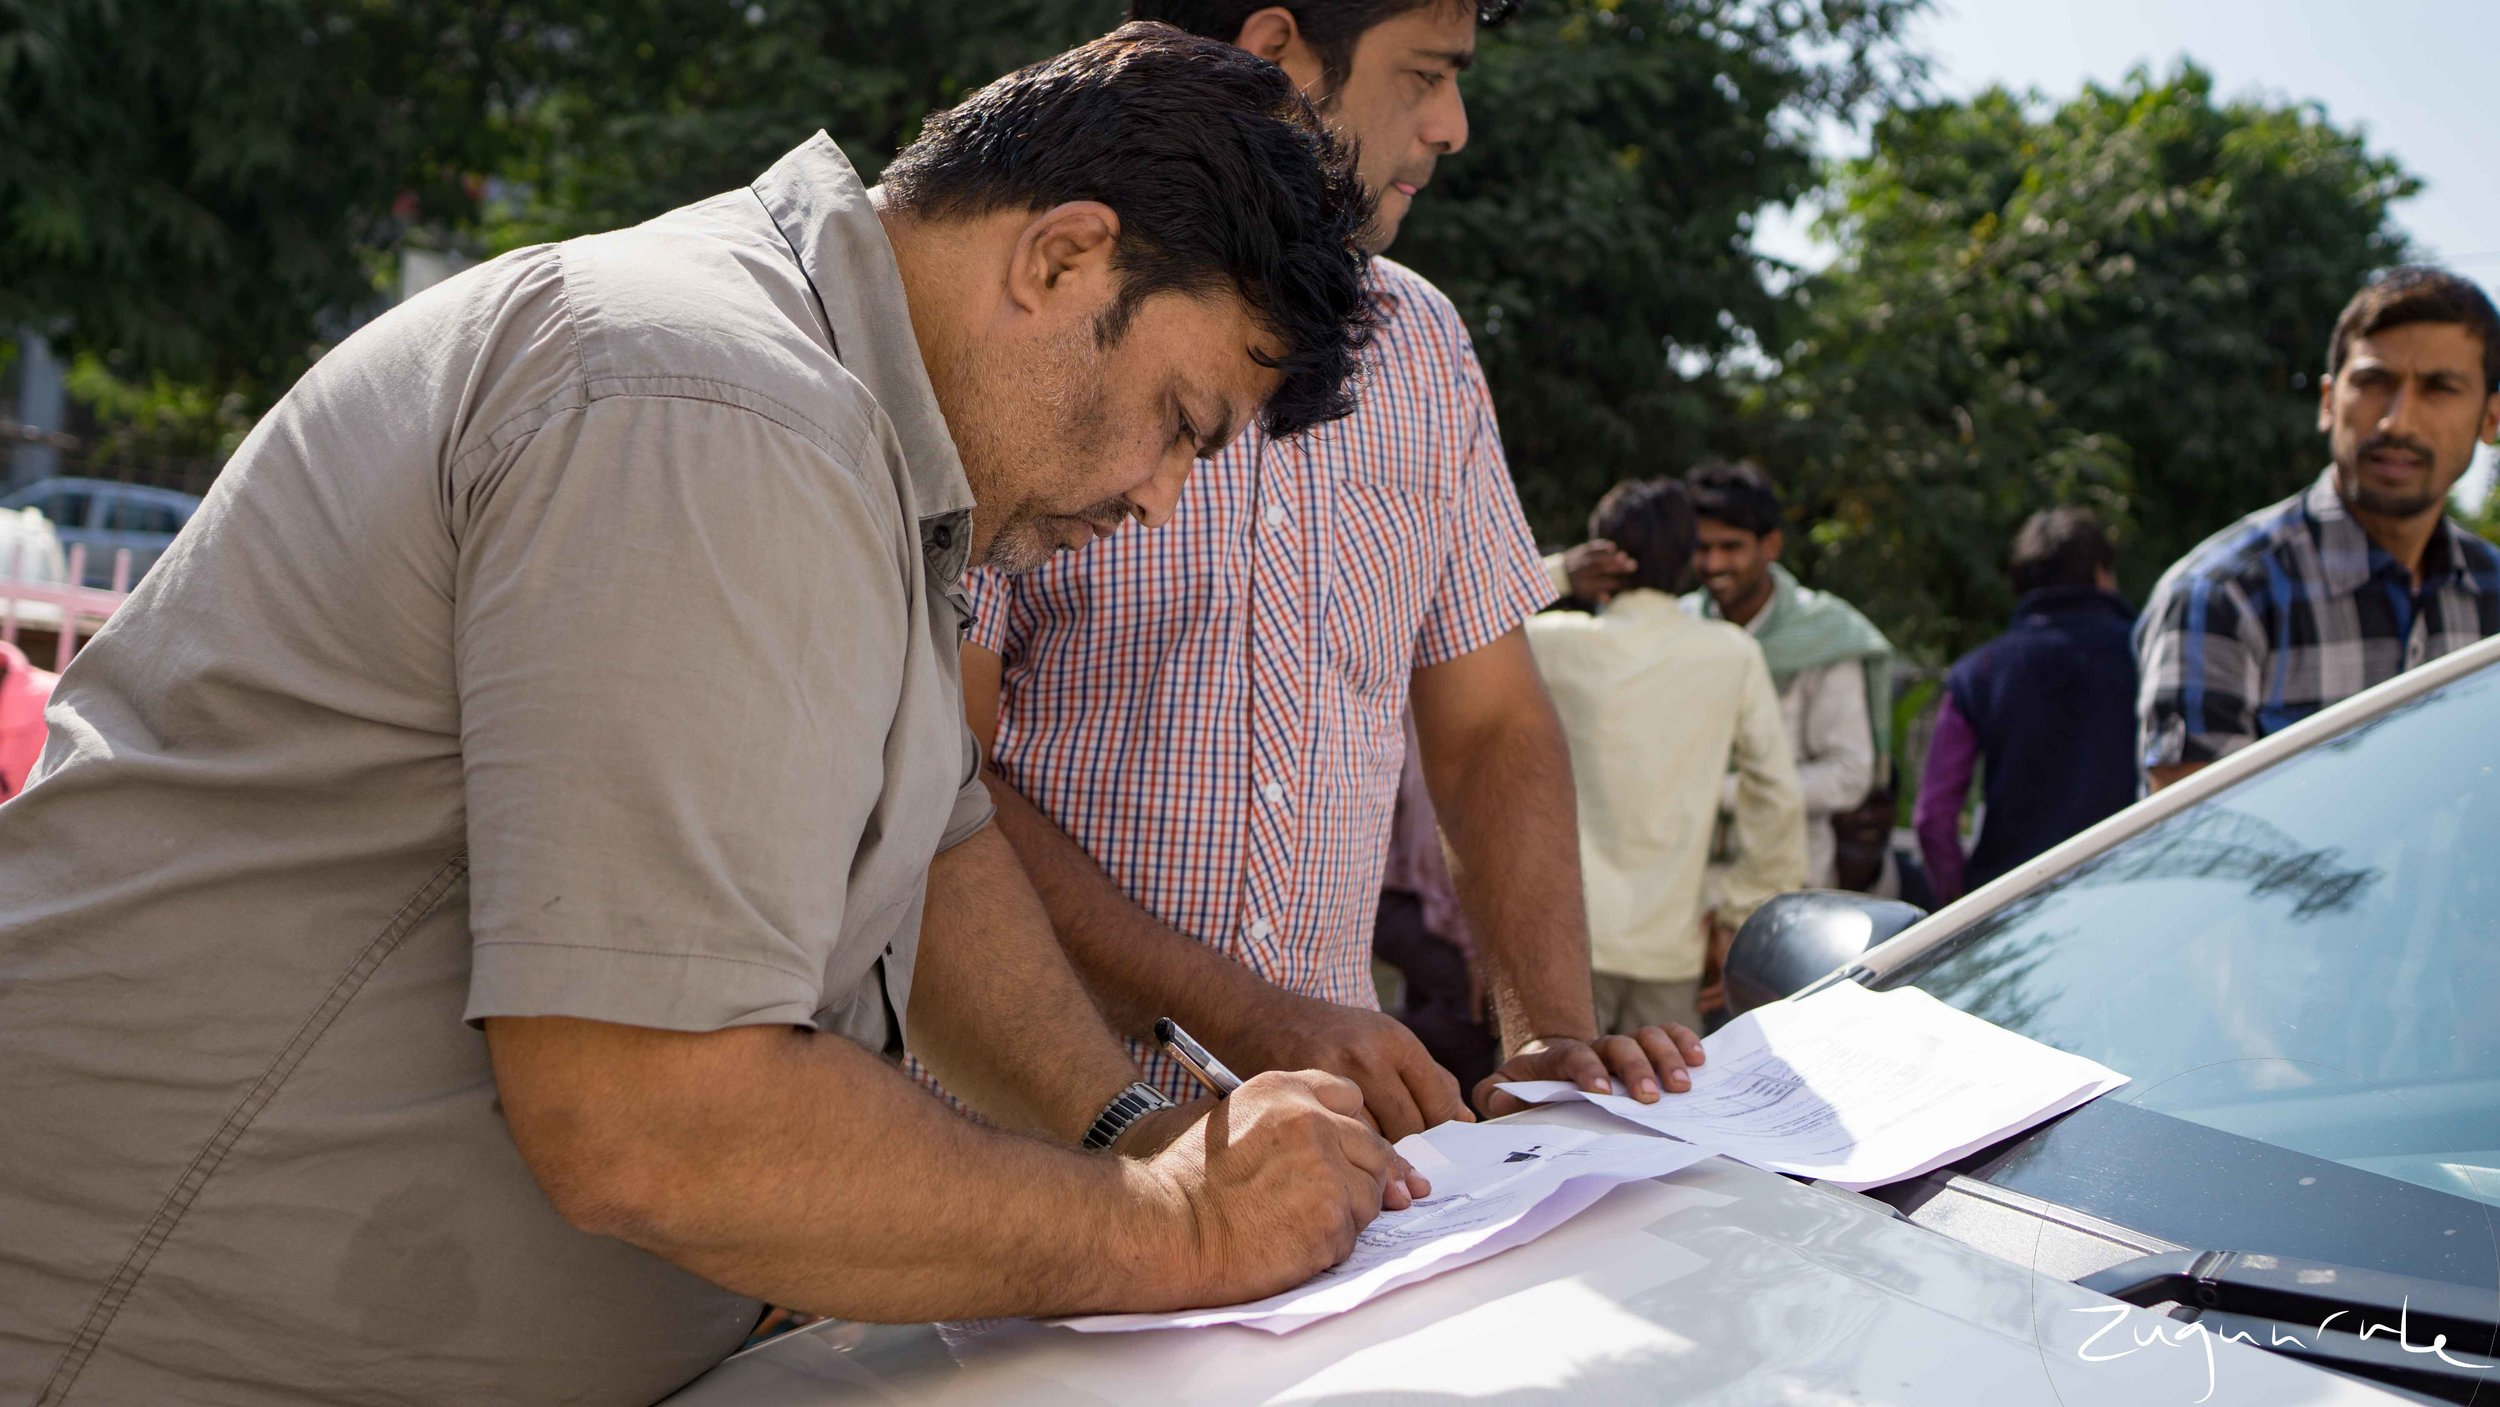 A man fills out exchange paperwork on the hood of a car (Jaipur)